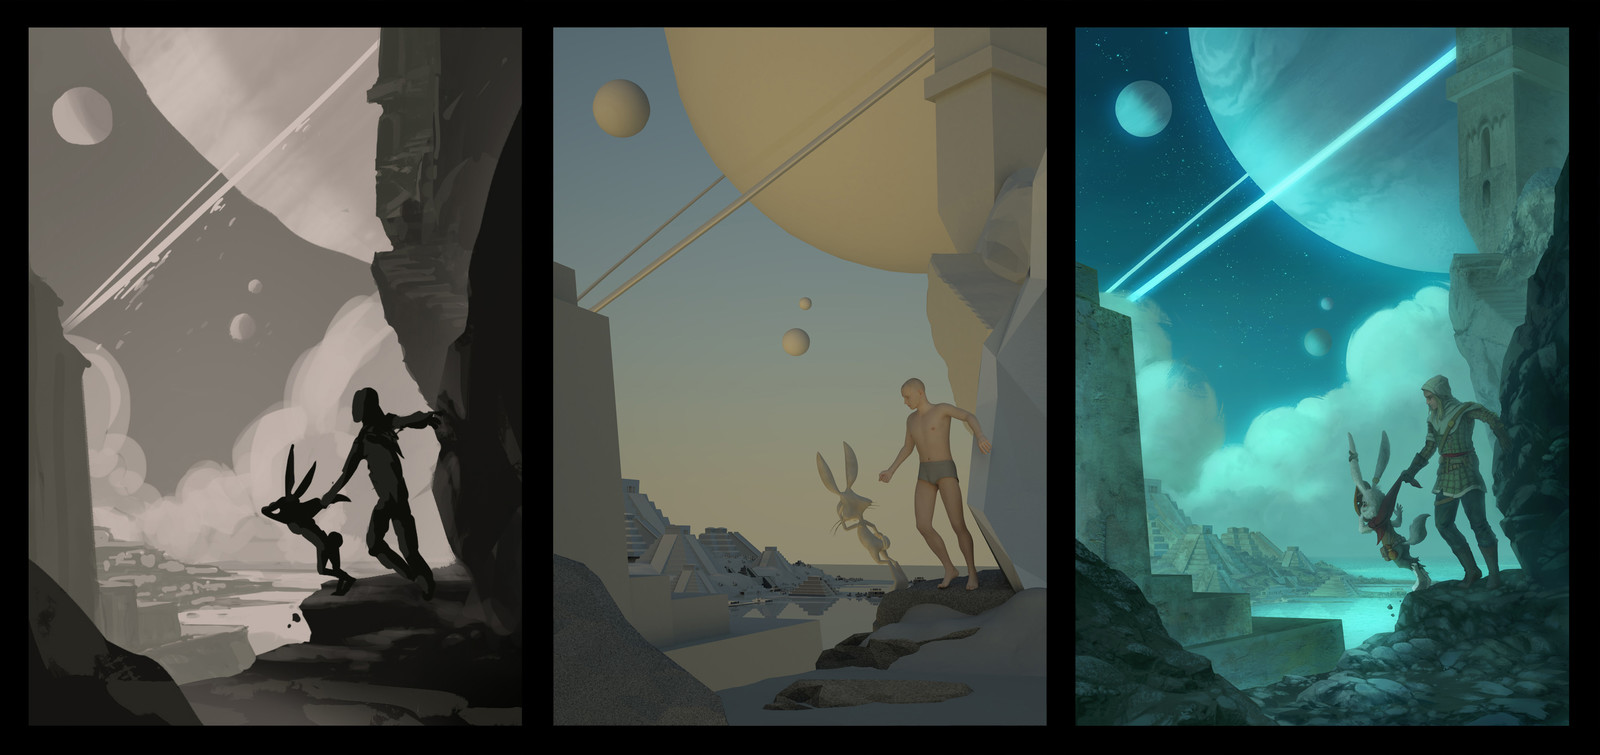 Final sketch, 3D render and finished painting